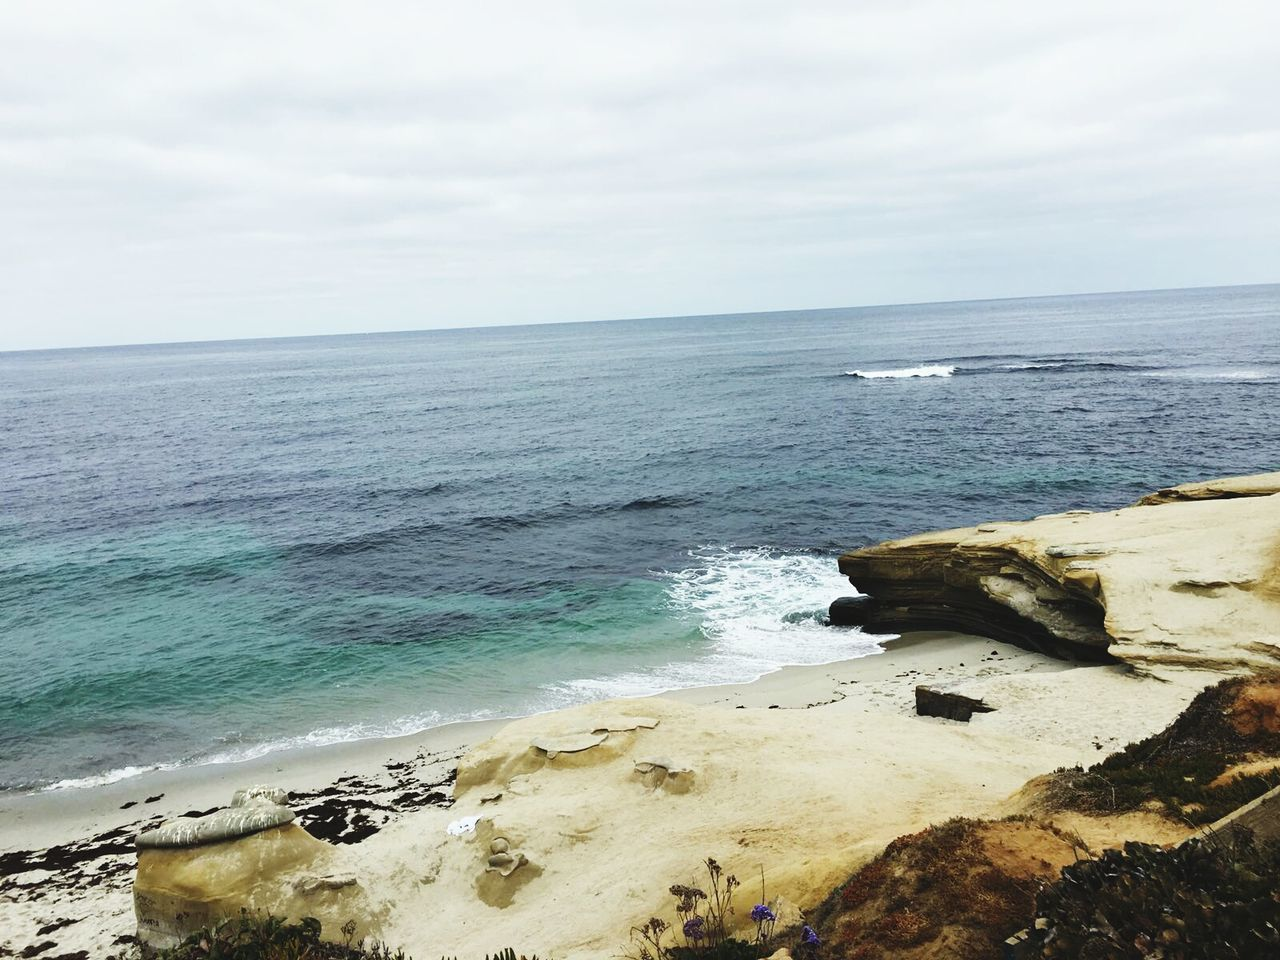 sea, horizon over water, water, nature, scenics, beauty in nature, sky, tranquil scene, tranquility, rock - object, outdoors, beach, no people, day, wave